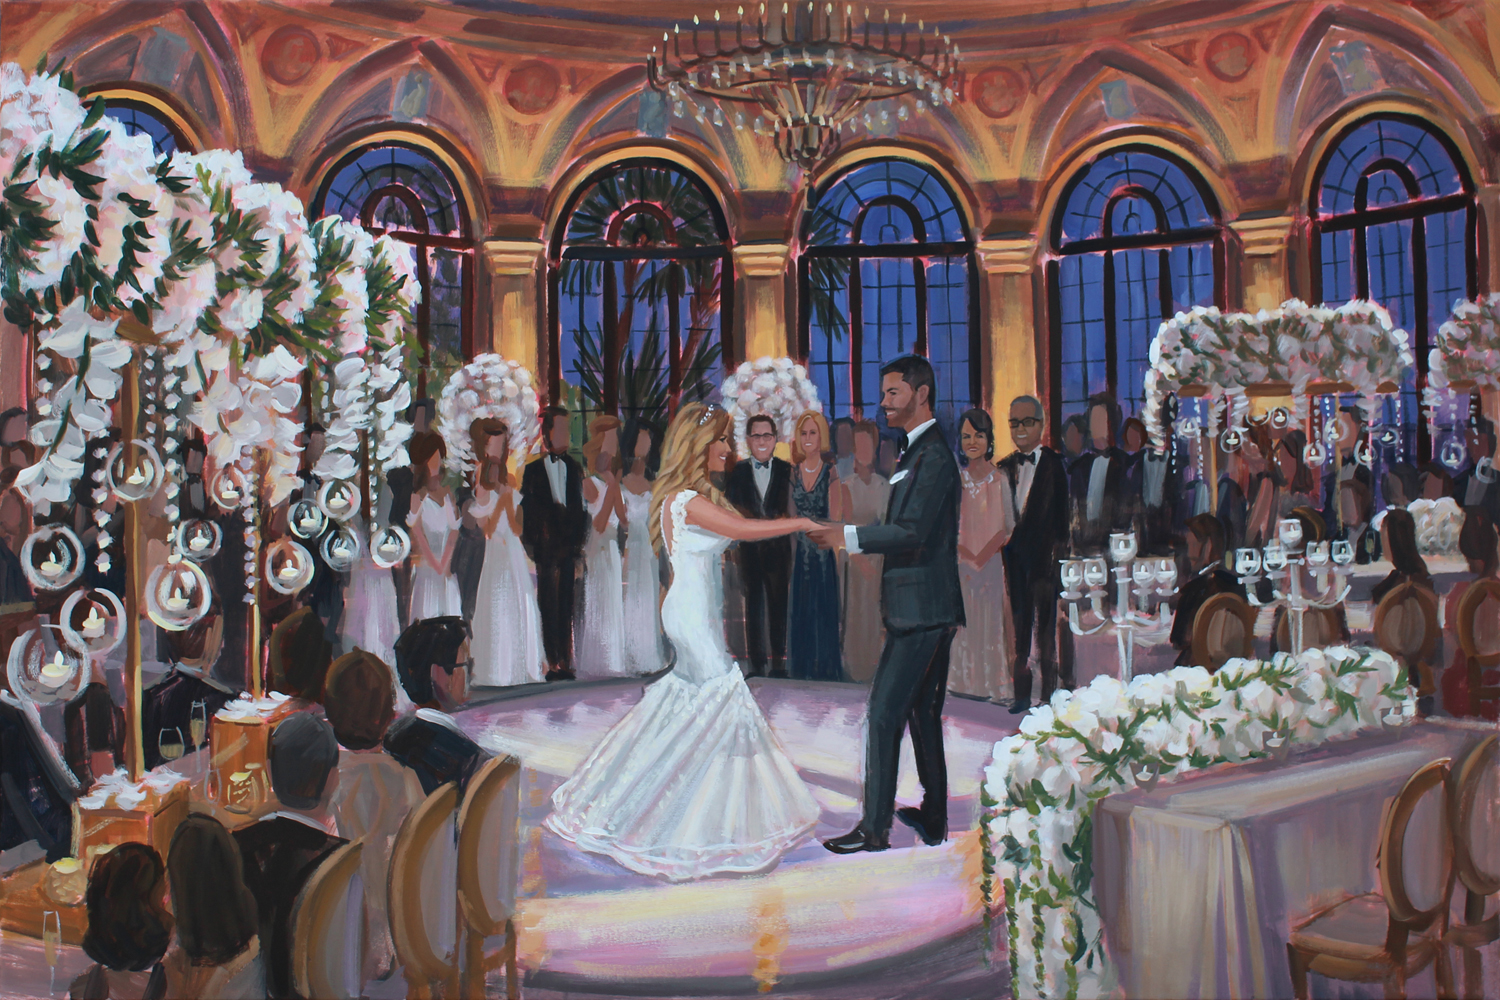 Live Wedding Painter, Ben Keys, captured Molly + Dalton's stunning first dance at The Breakers in Palm Beach, FL.